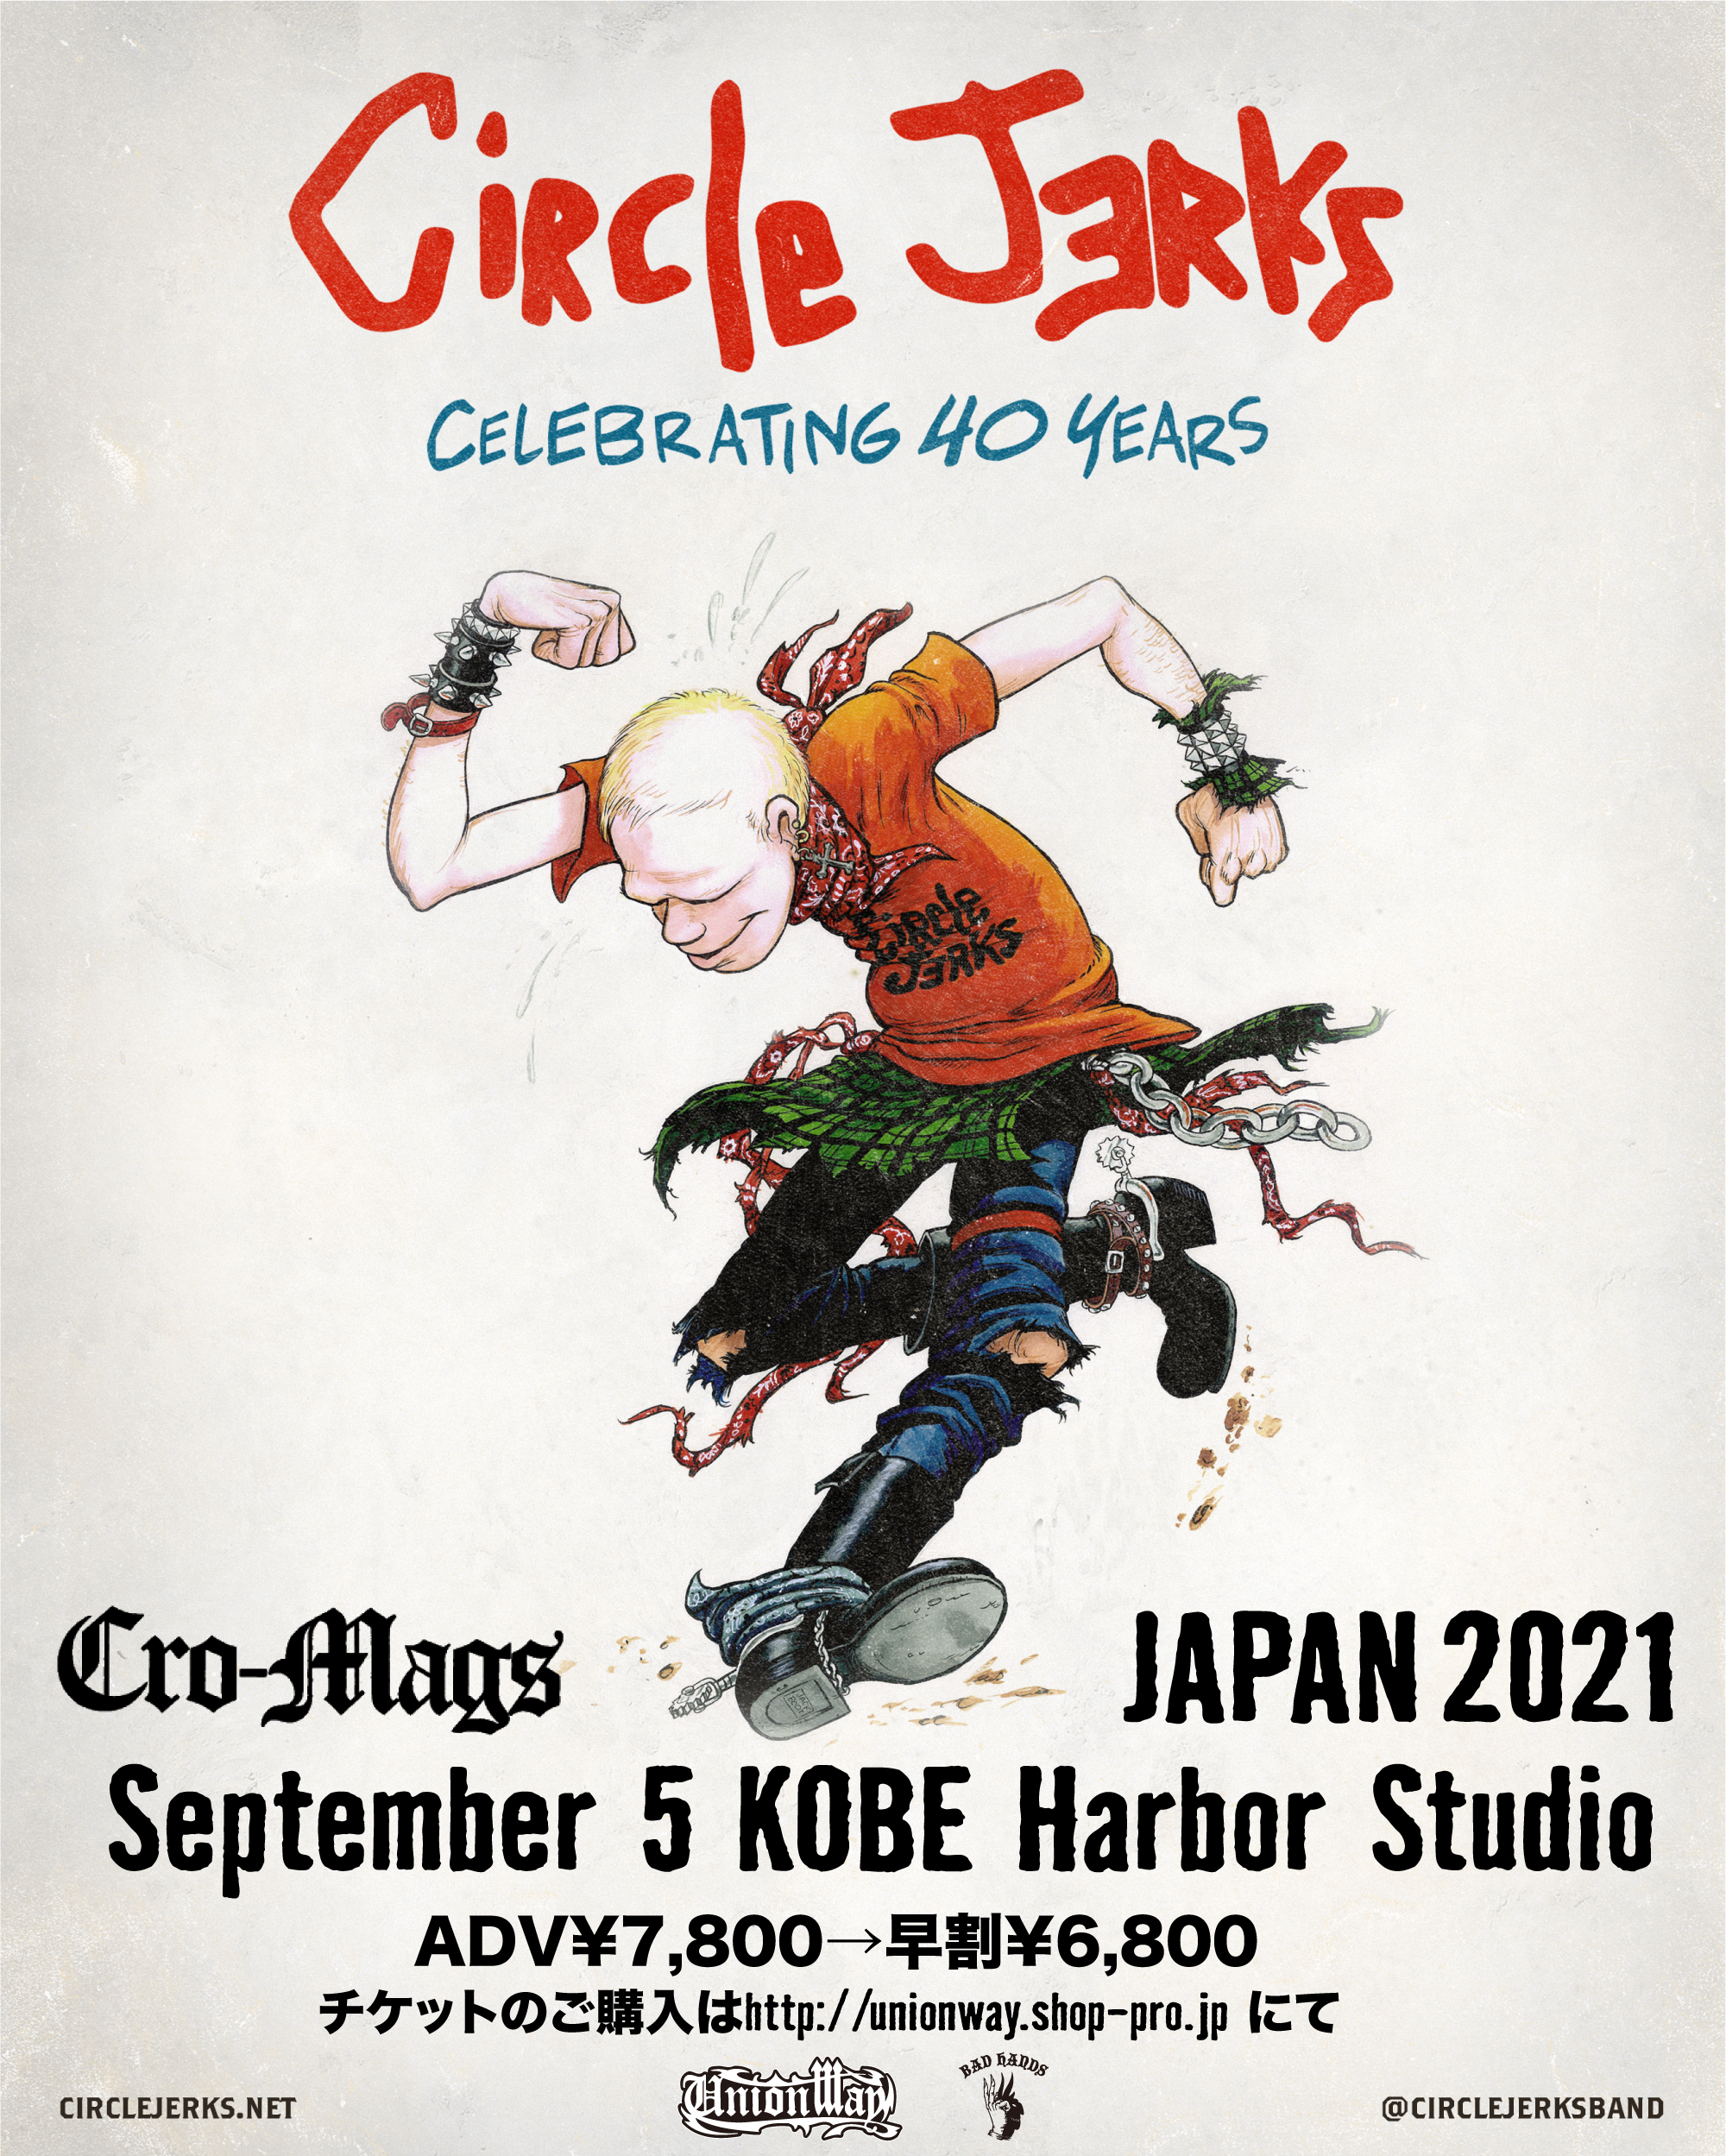 UNIONWAY Presents Circle Jerks CELEBRATING 40 YEARS JAPAN TOUR 2021